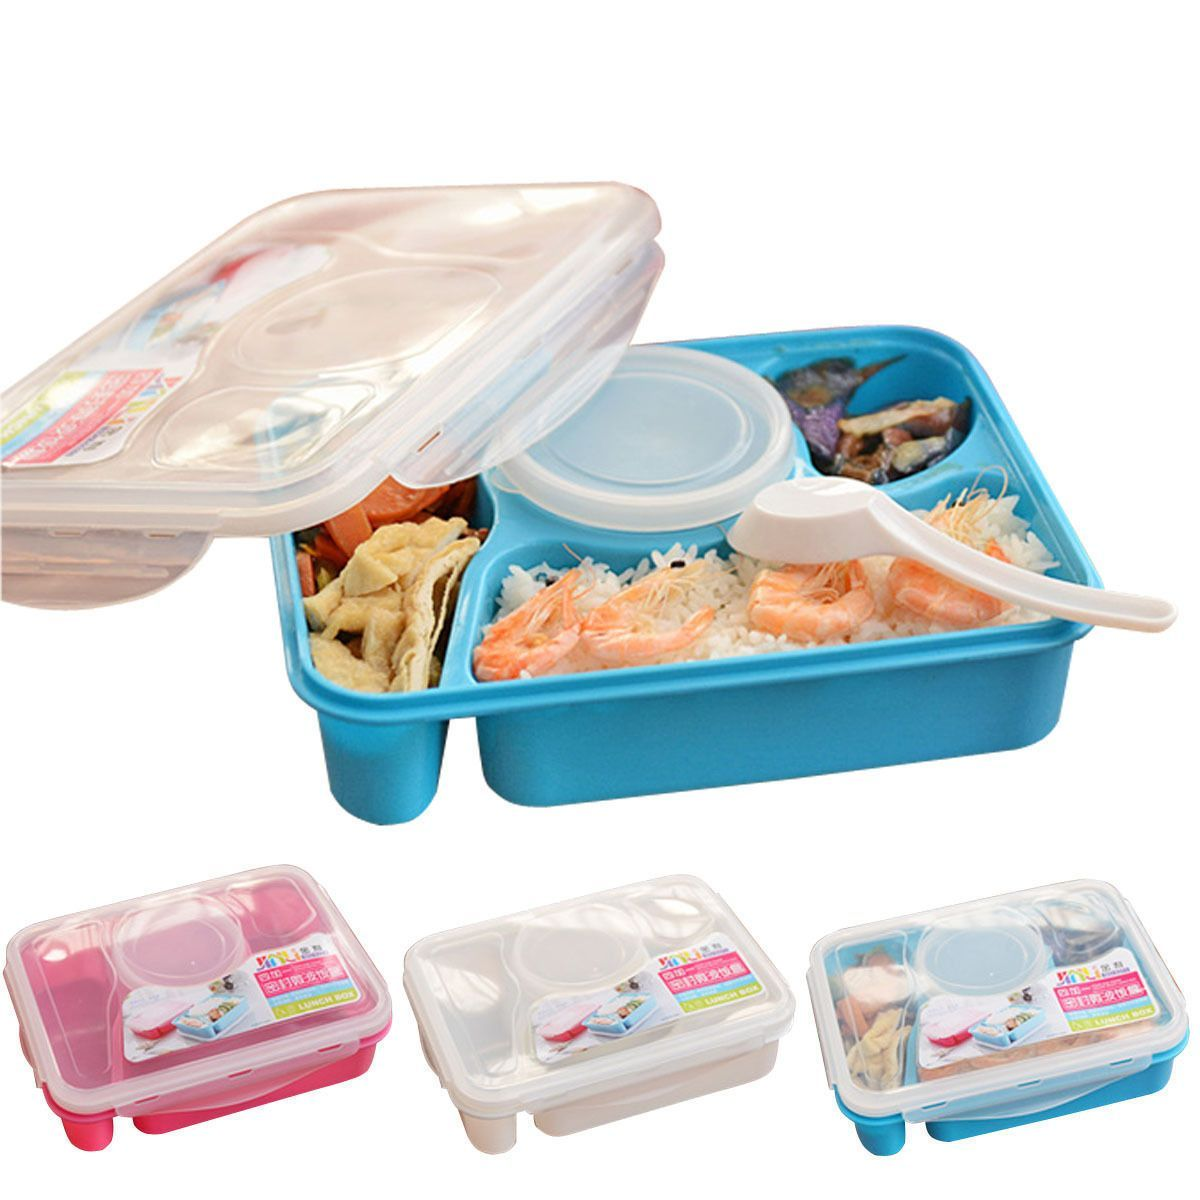 Separated Bento Lunch Box Set Utensils Food Storage Container Microwave Oven